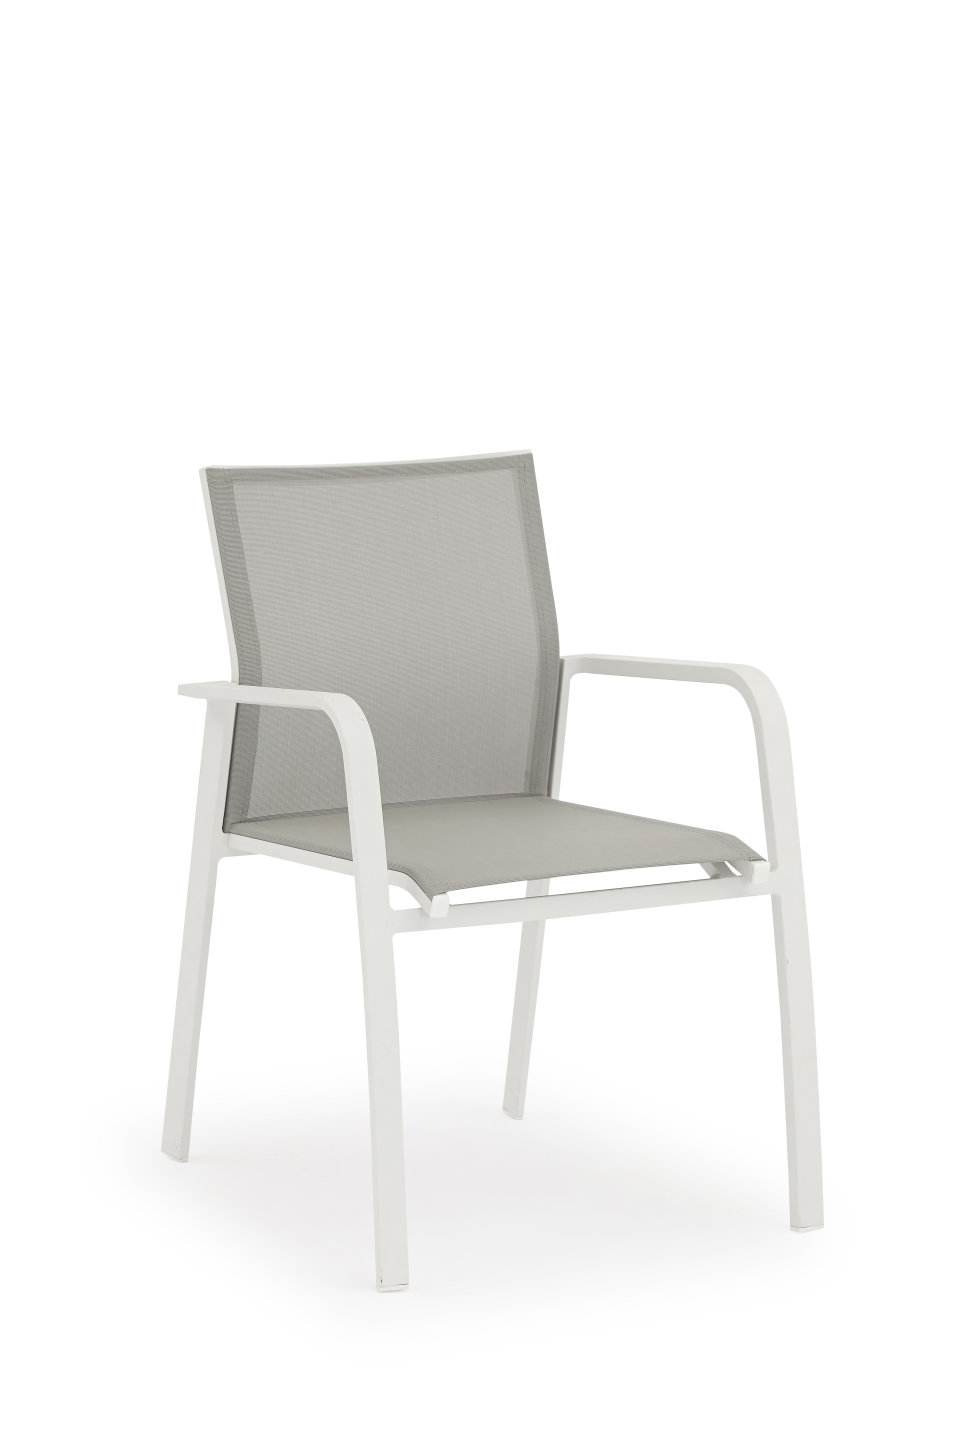 Fauteuil Blanc/Taupe - Nice